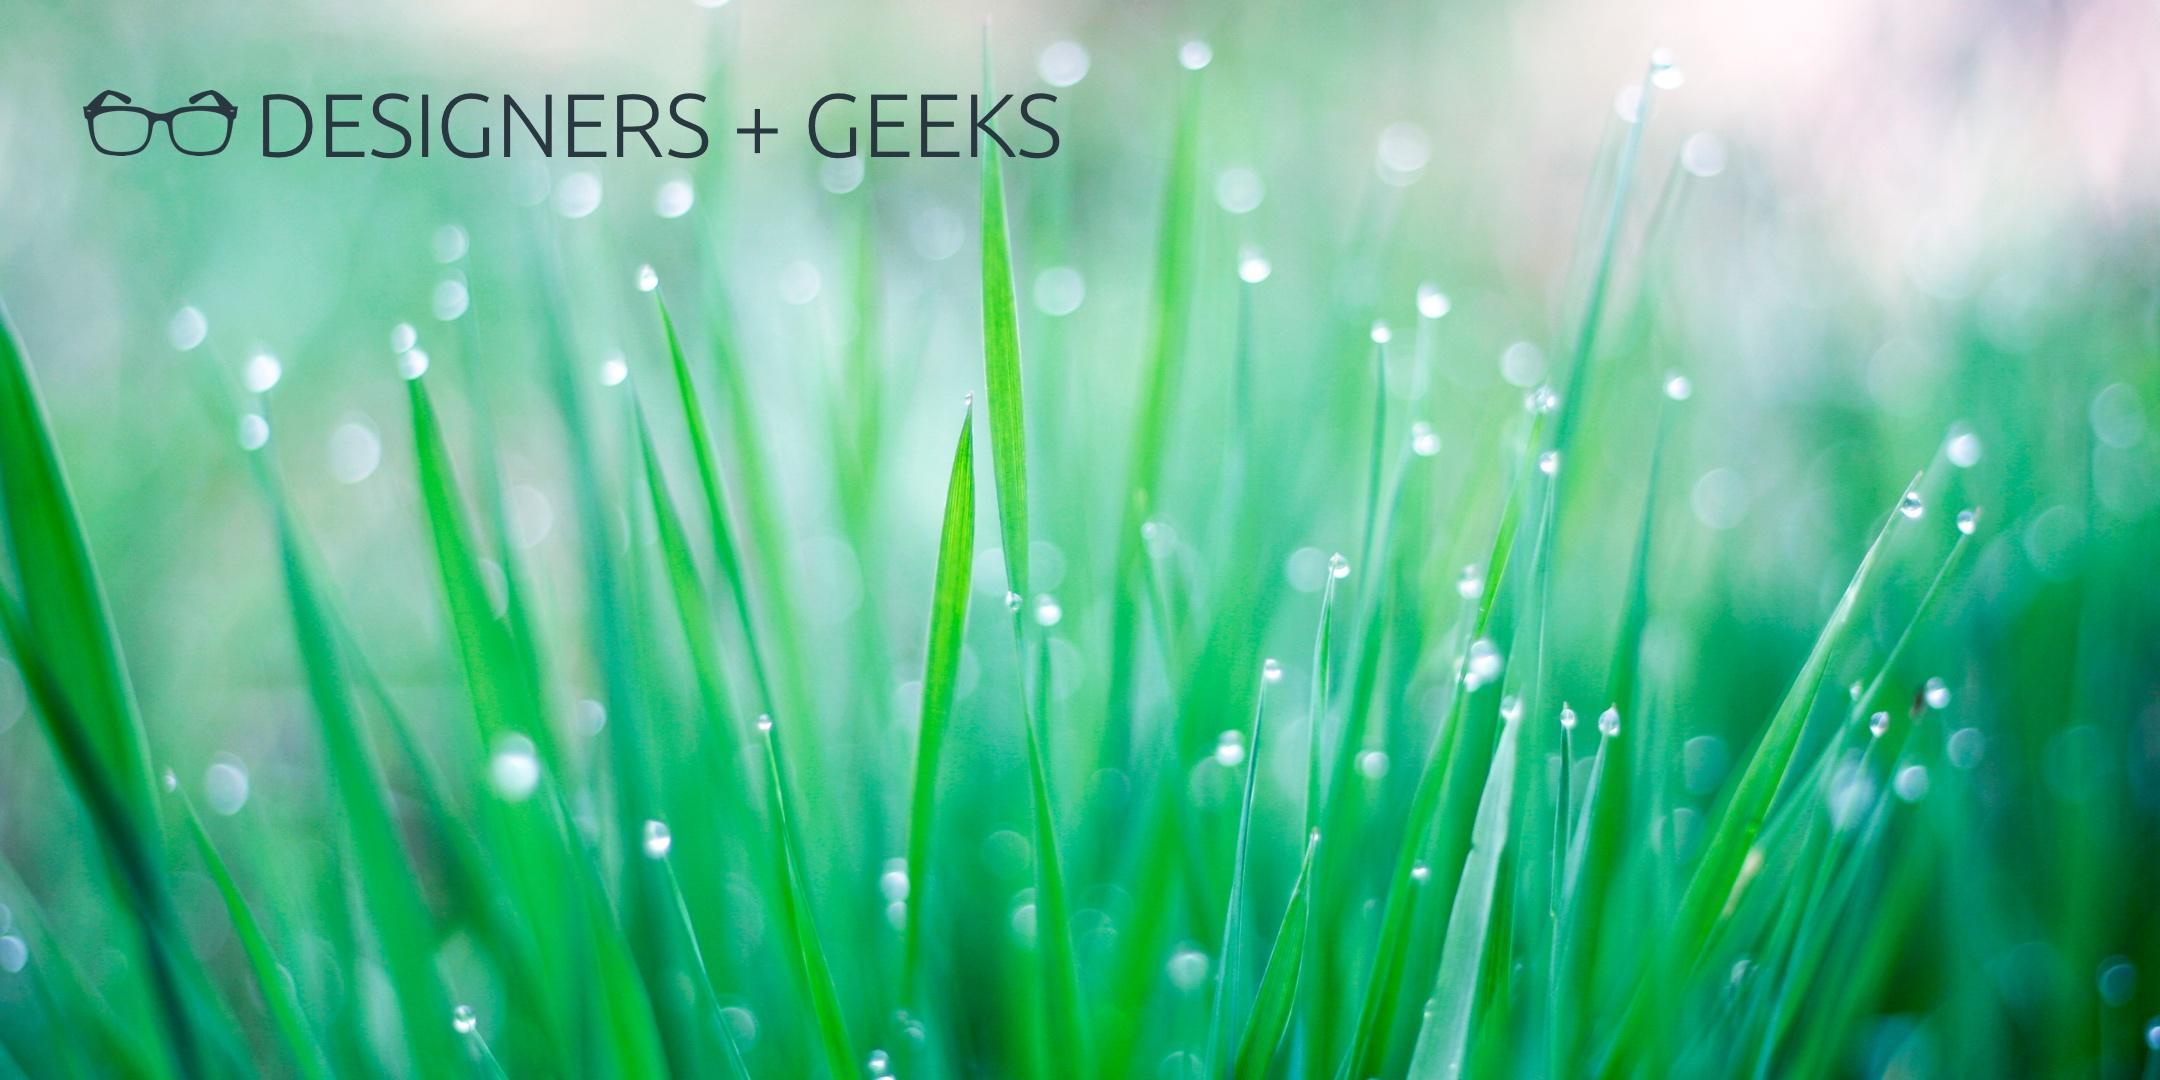 Designers + Geeks: Cultivating the New